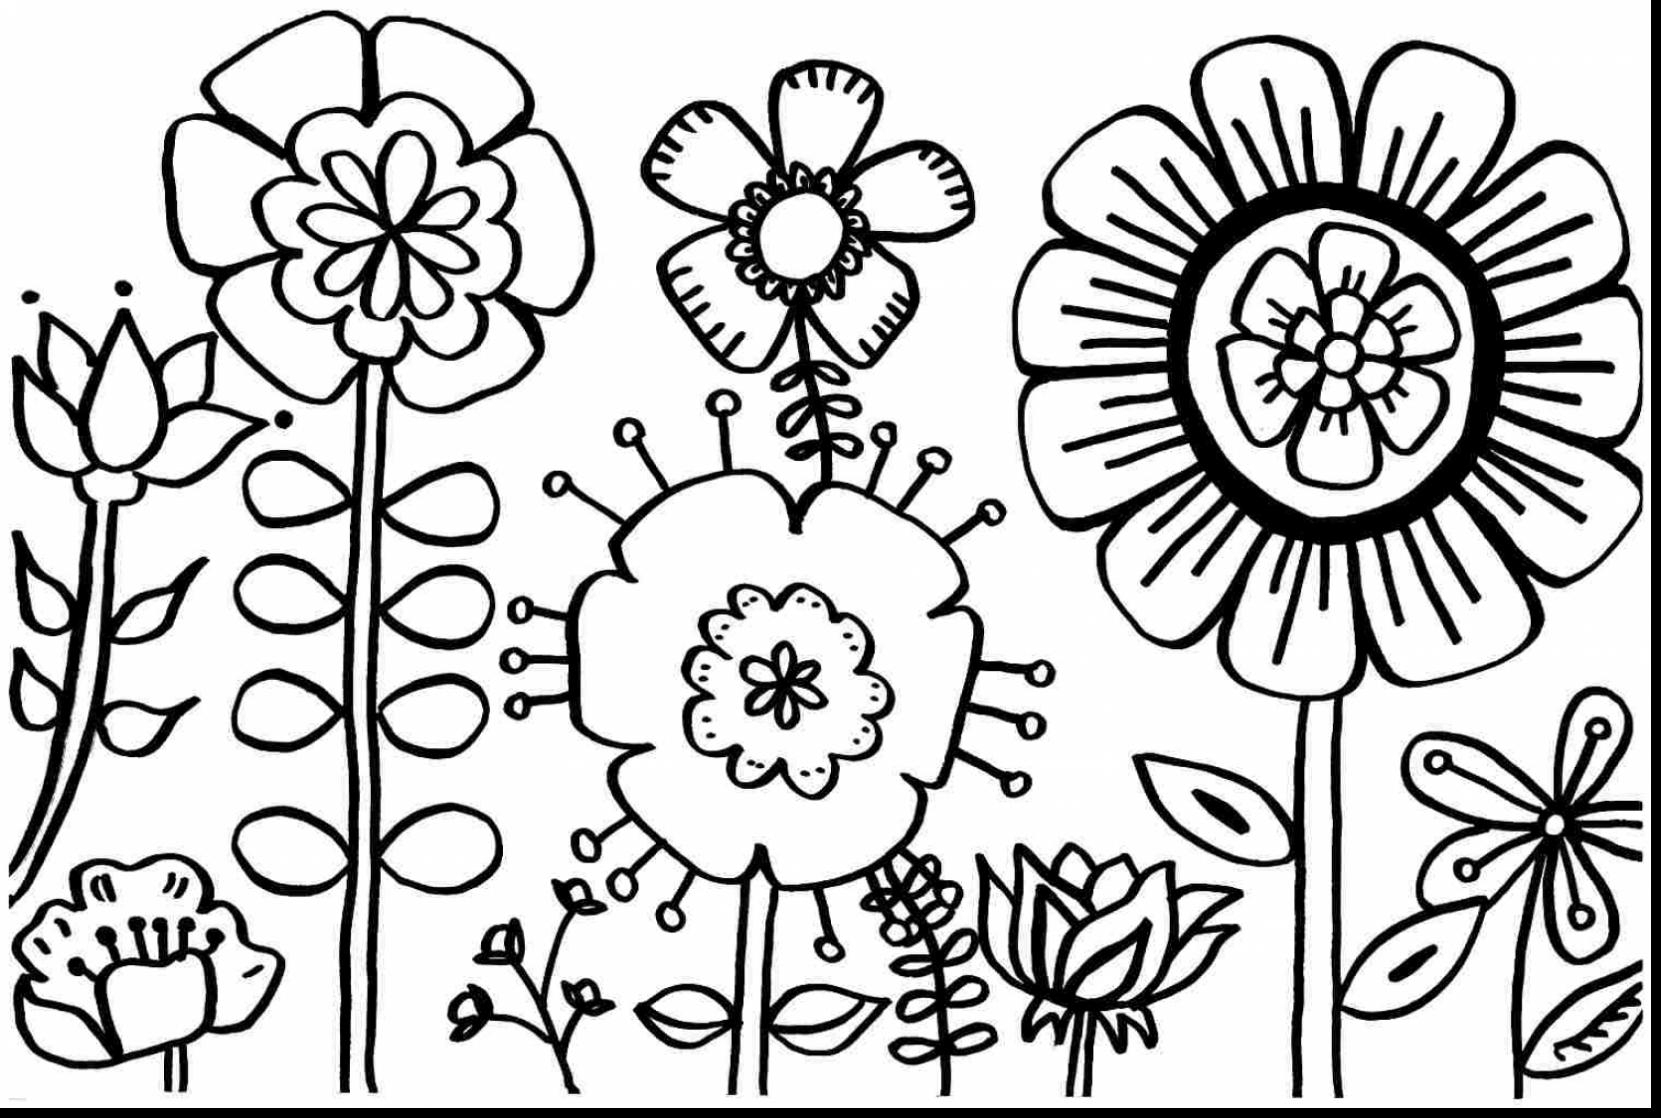 Free Printable Spring Coloring Pages | All Coloring Pages - Free Printable Spring Pictures To Color